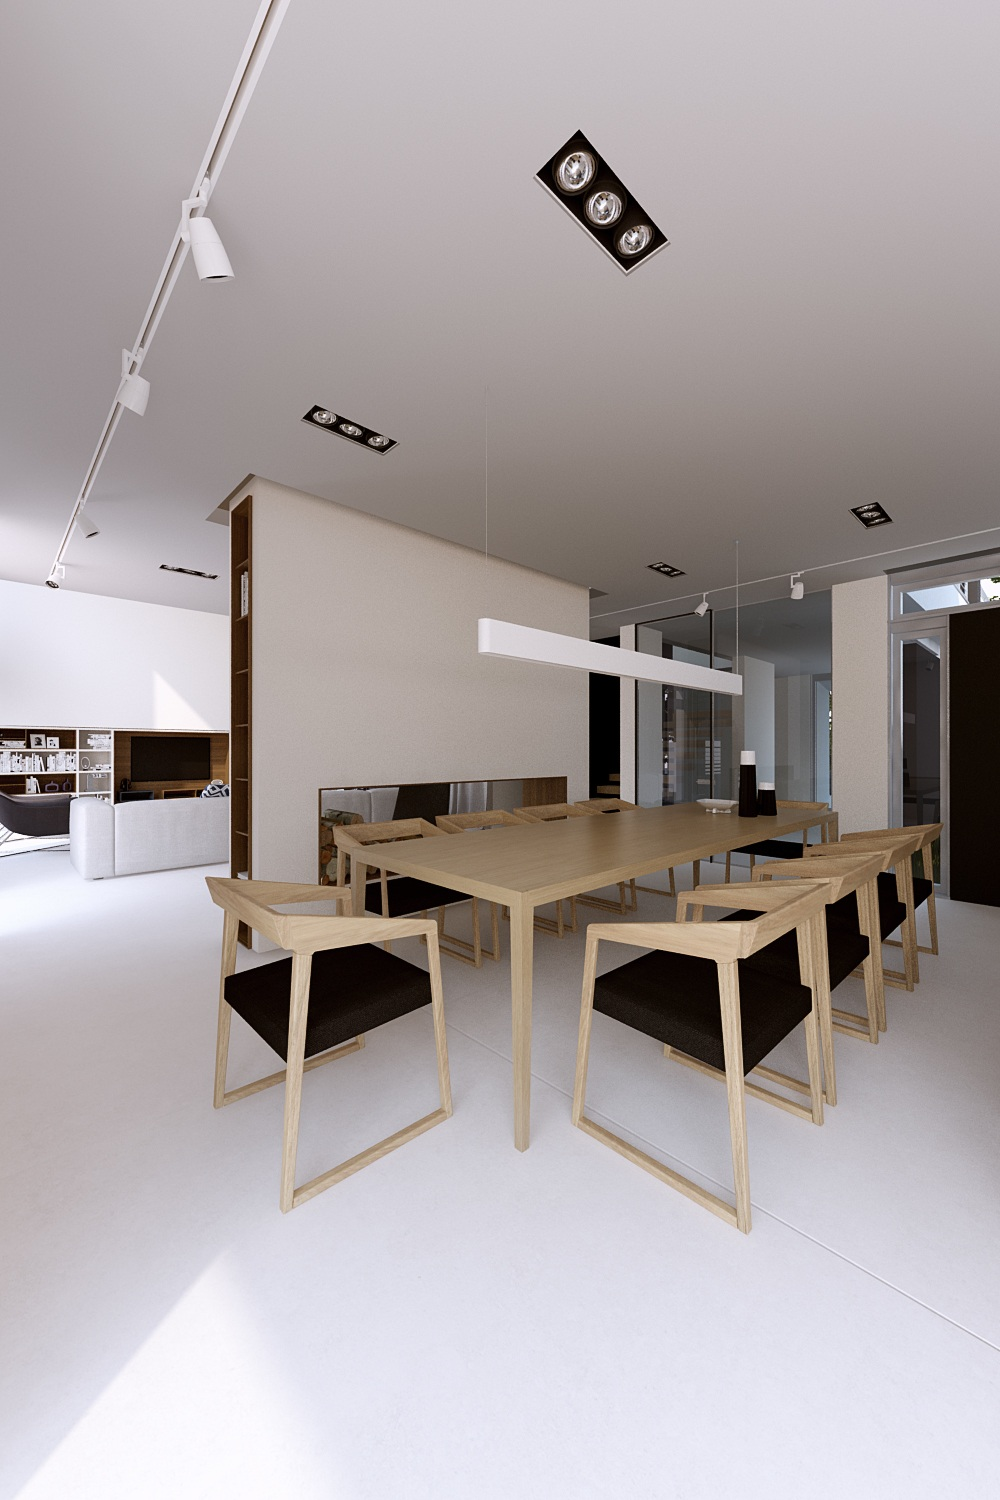 Birch Wood Dining Table - A sleek house that puts a passion for cars on display